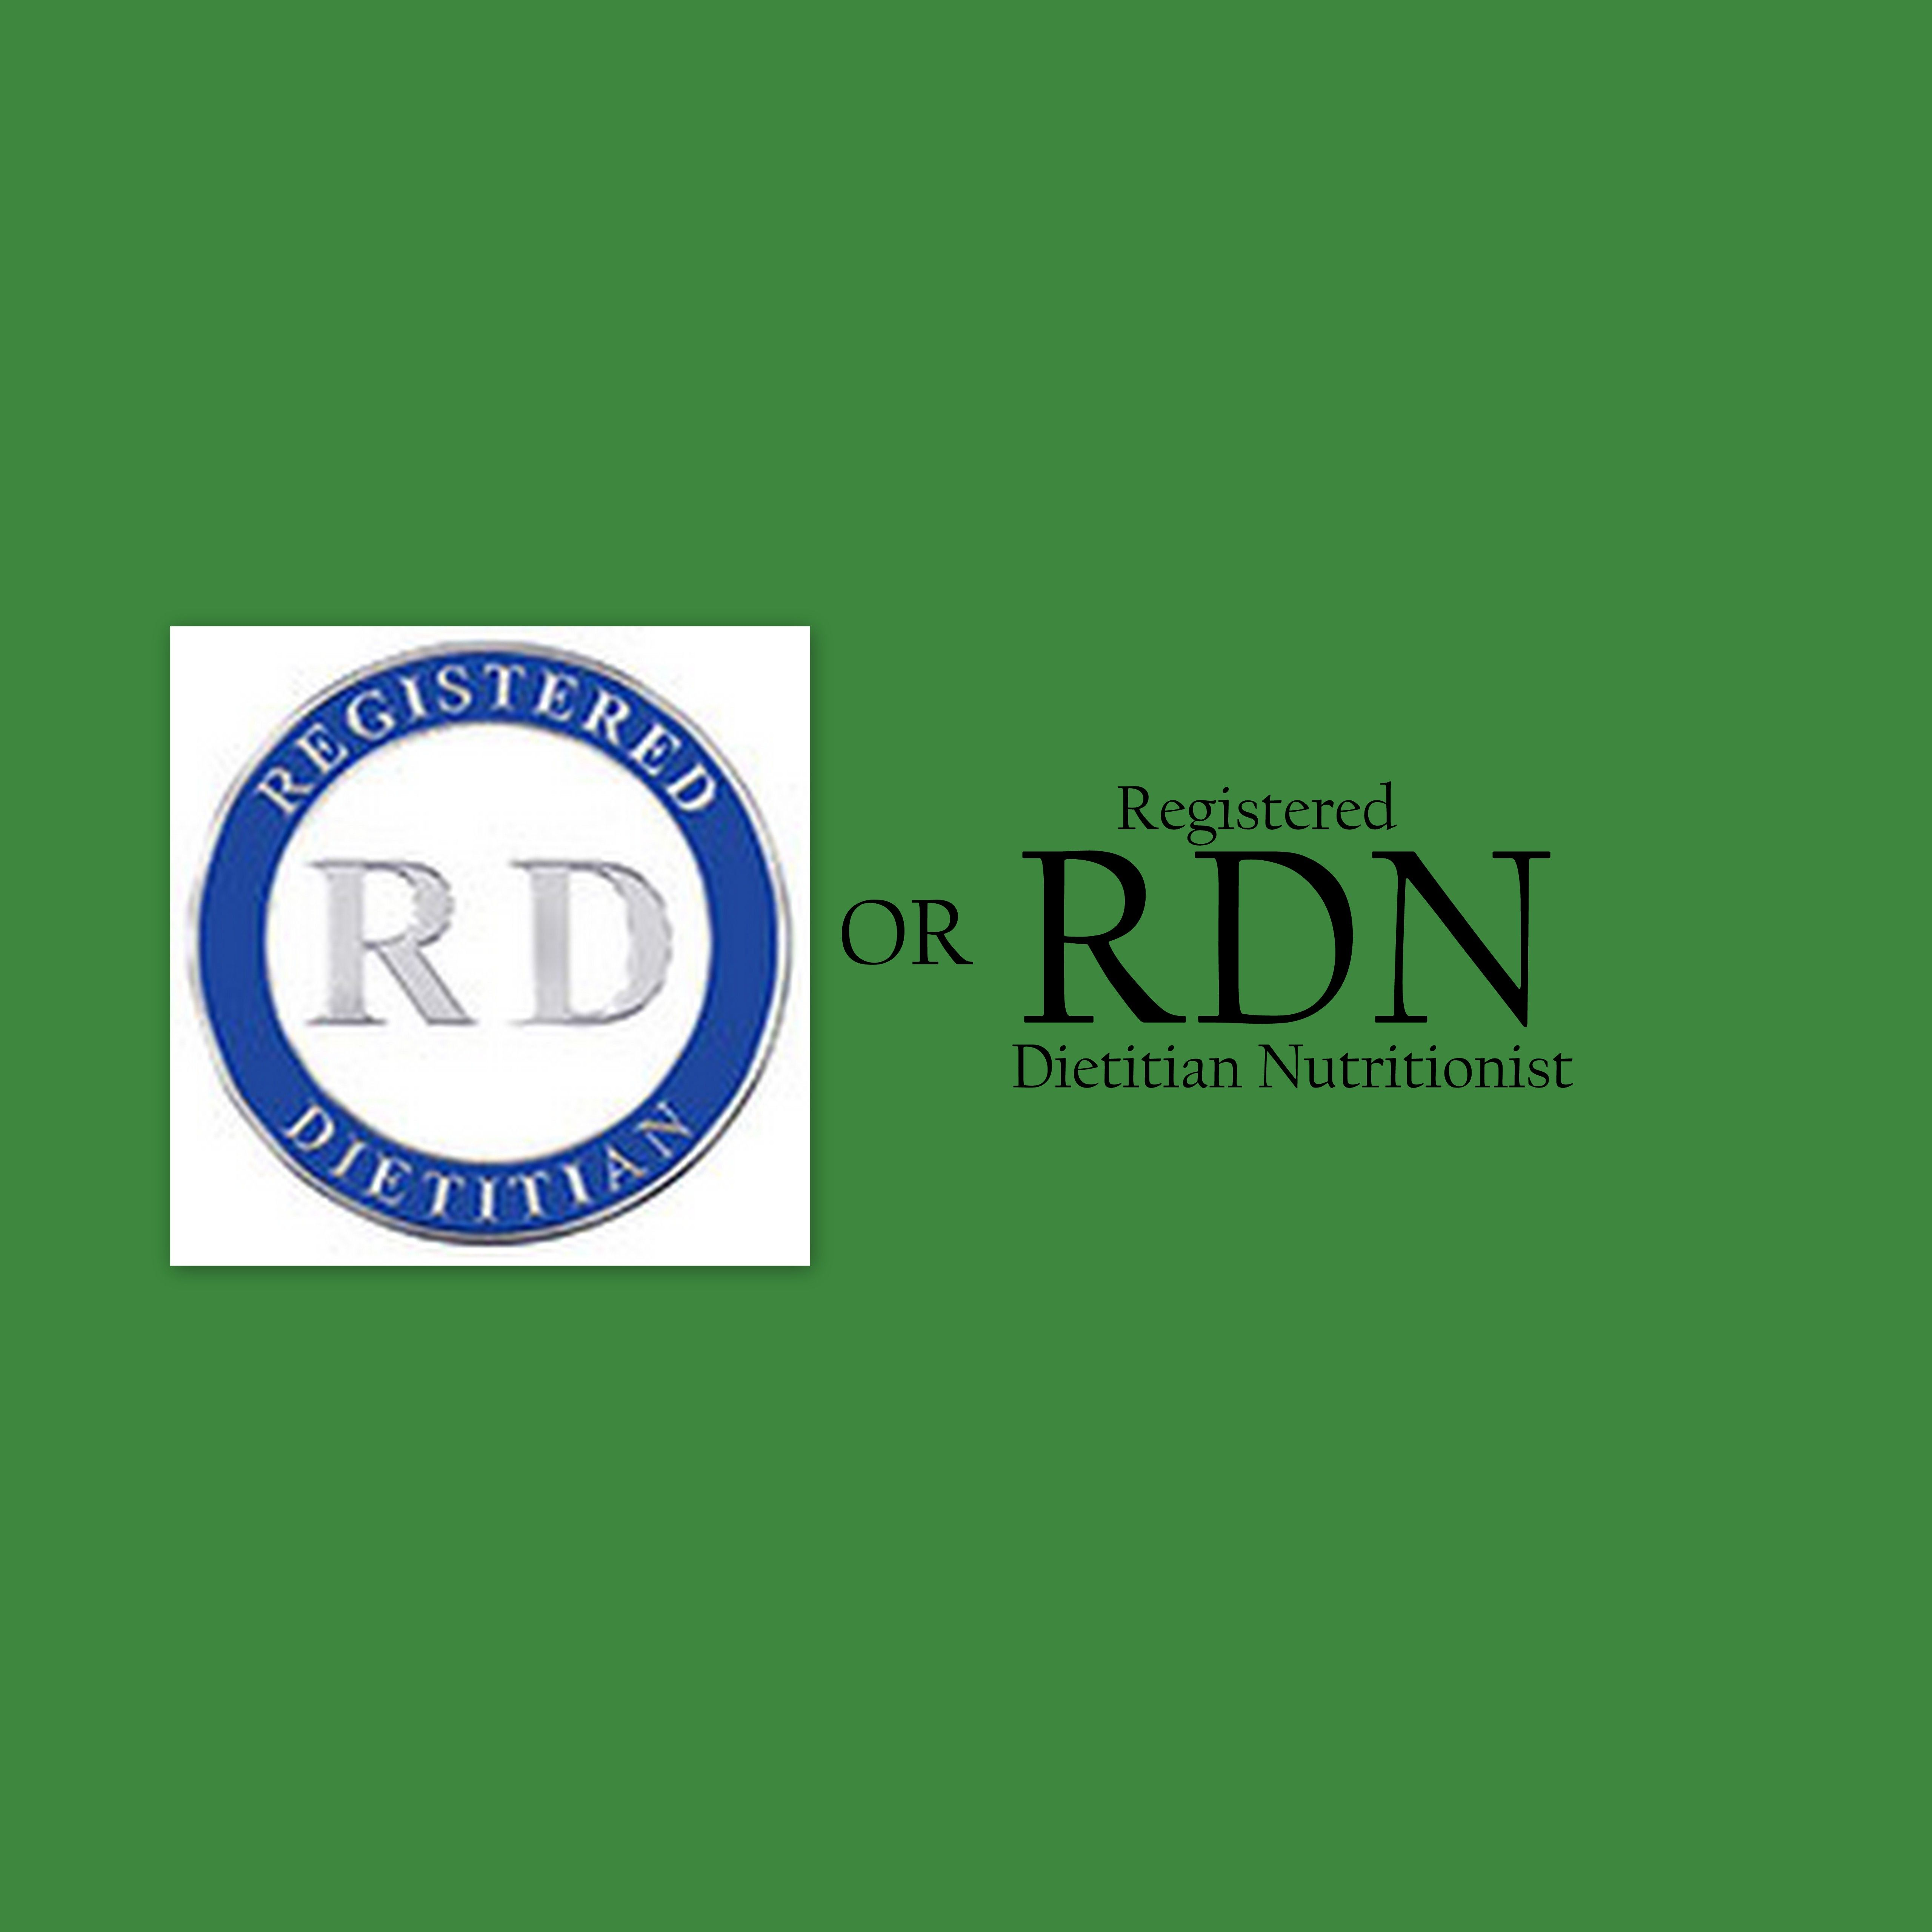 New Optional Credential For Registered Dietitians RDN Dietitian Nutritionist